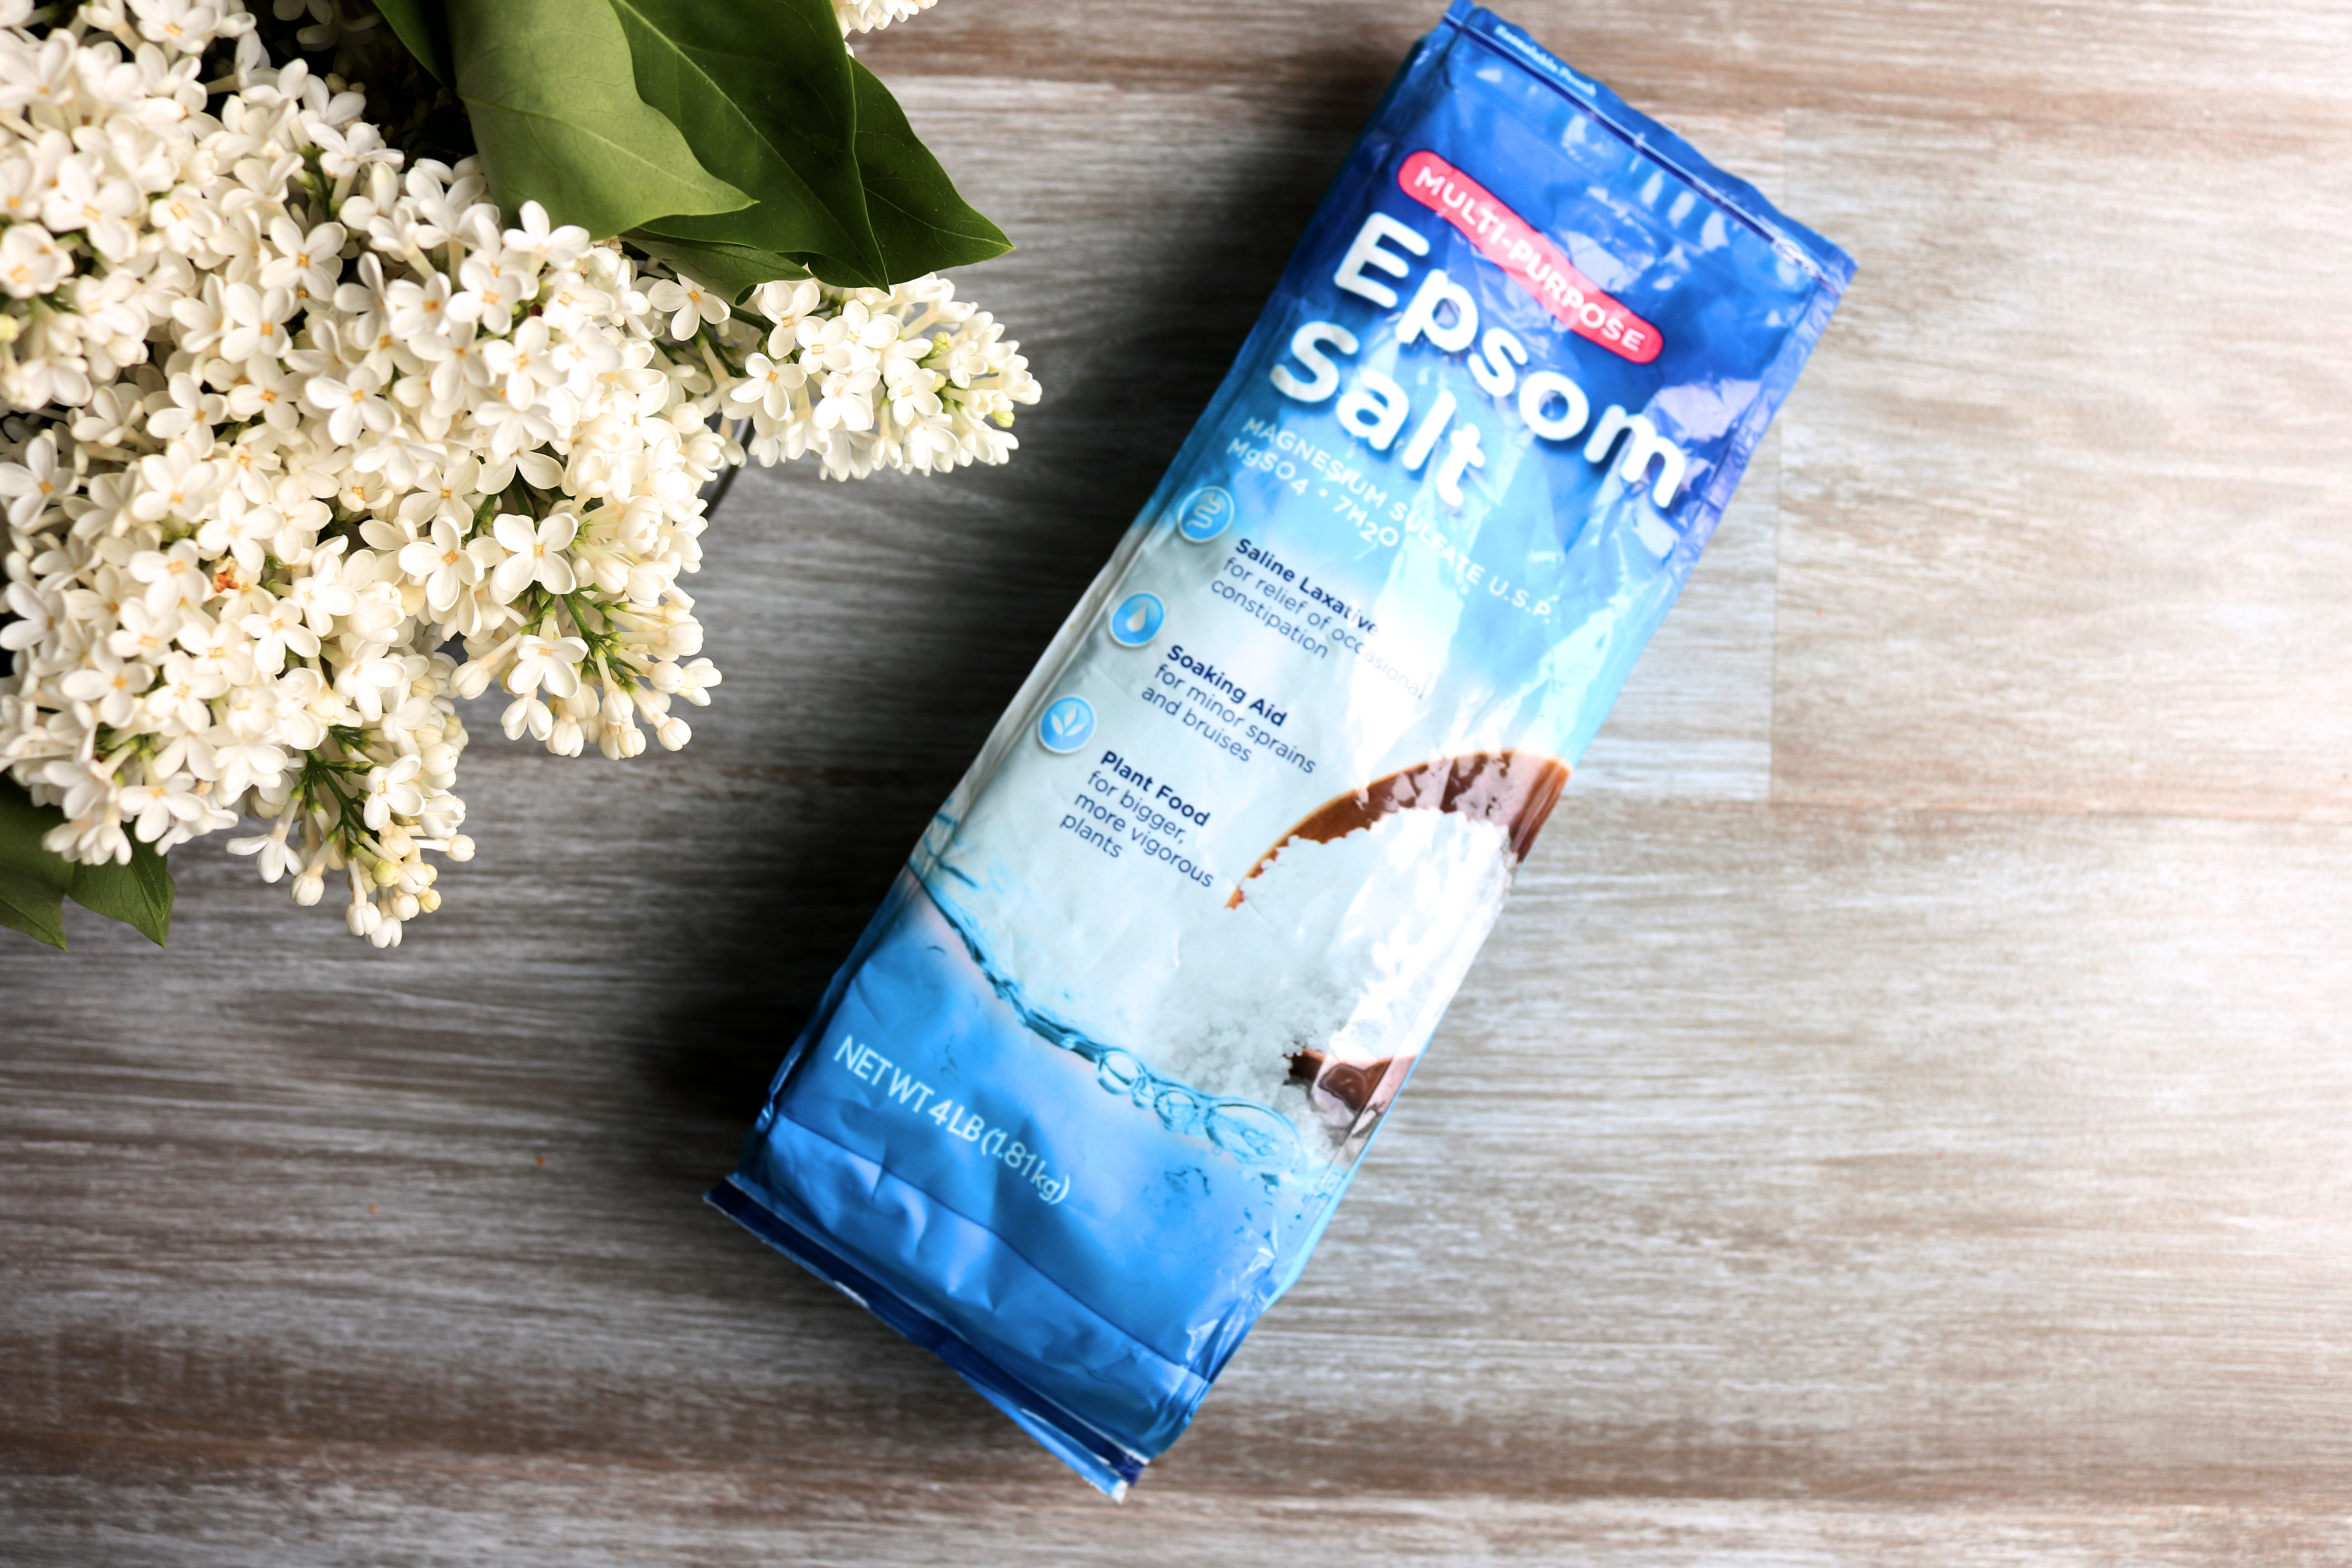 Epsom salt with warm water helps infection, swelling in the skin to go away due to splinters or other foreign objects.